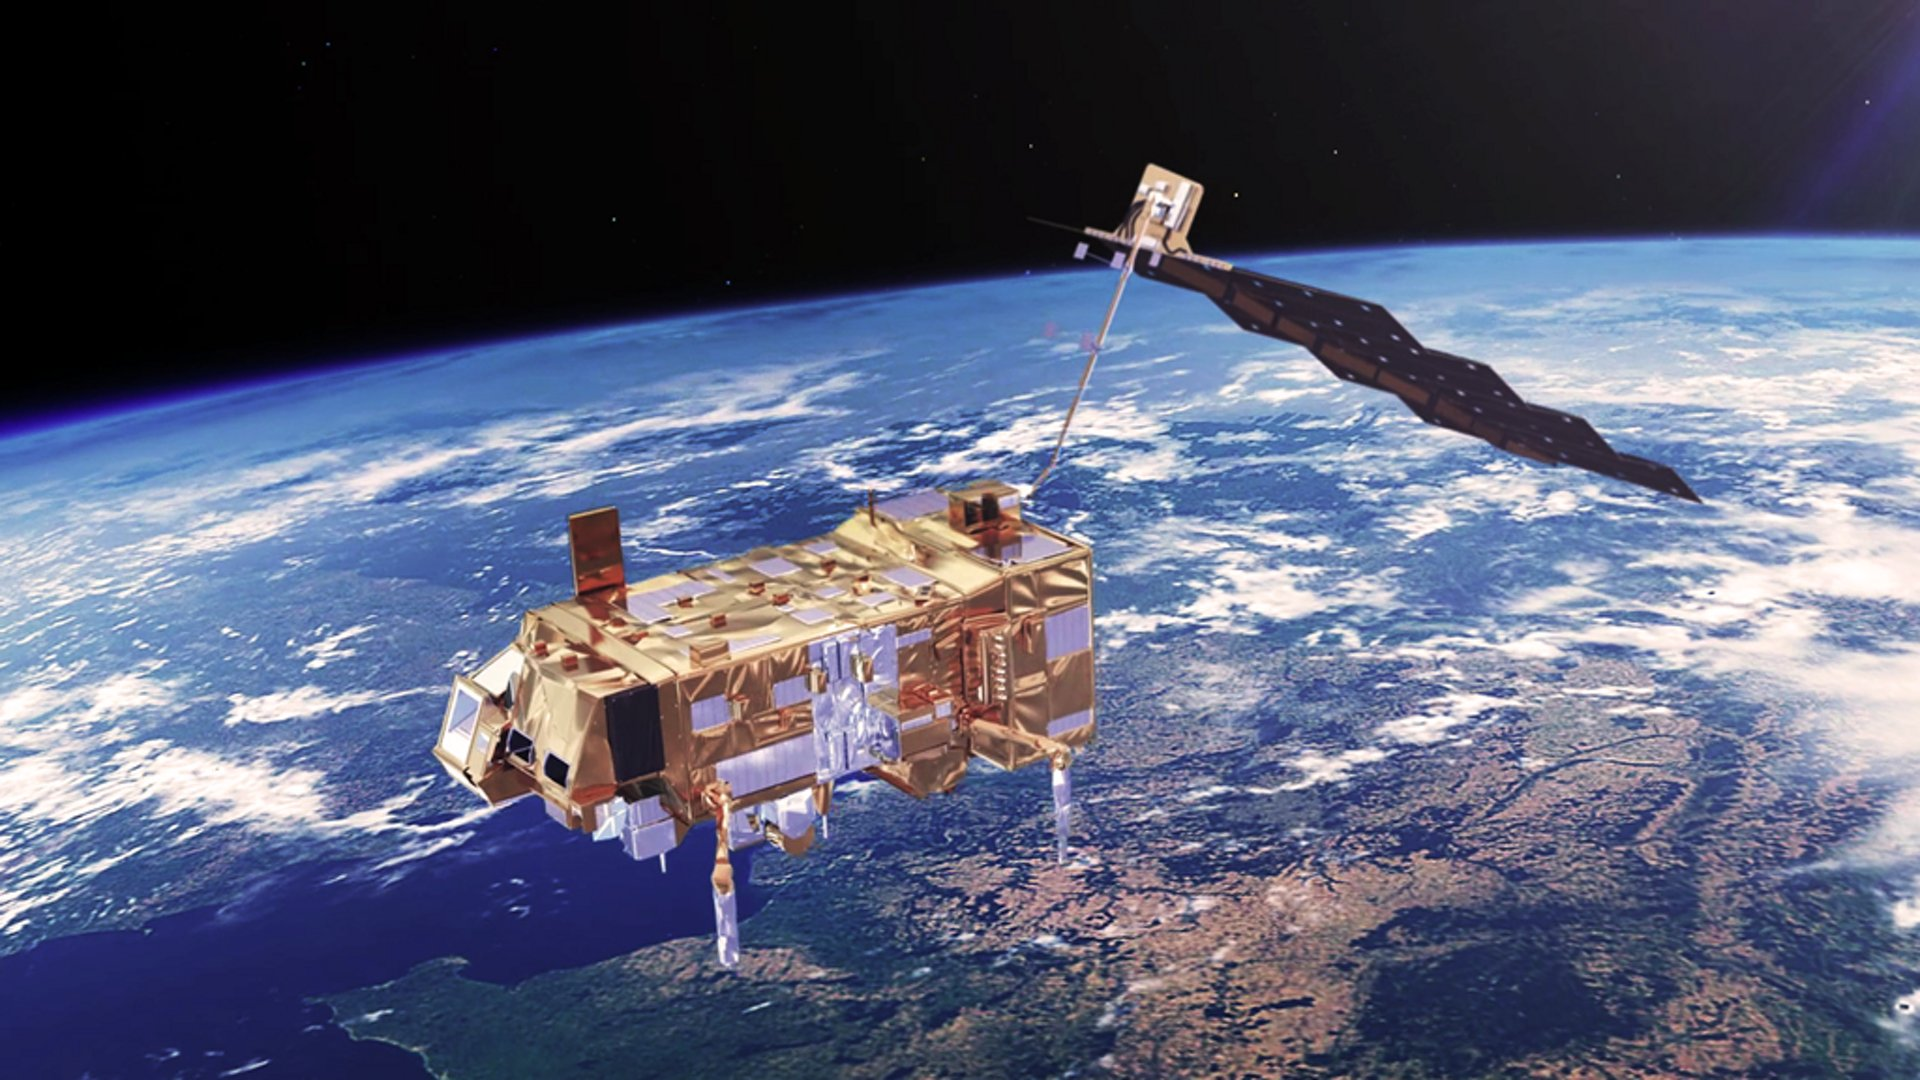 Metop C Weather Satellite Successfully Launched